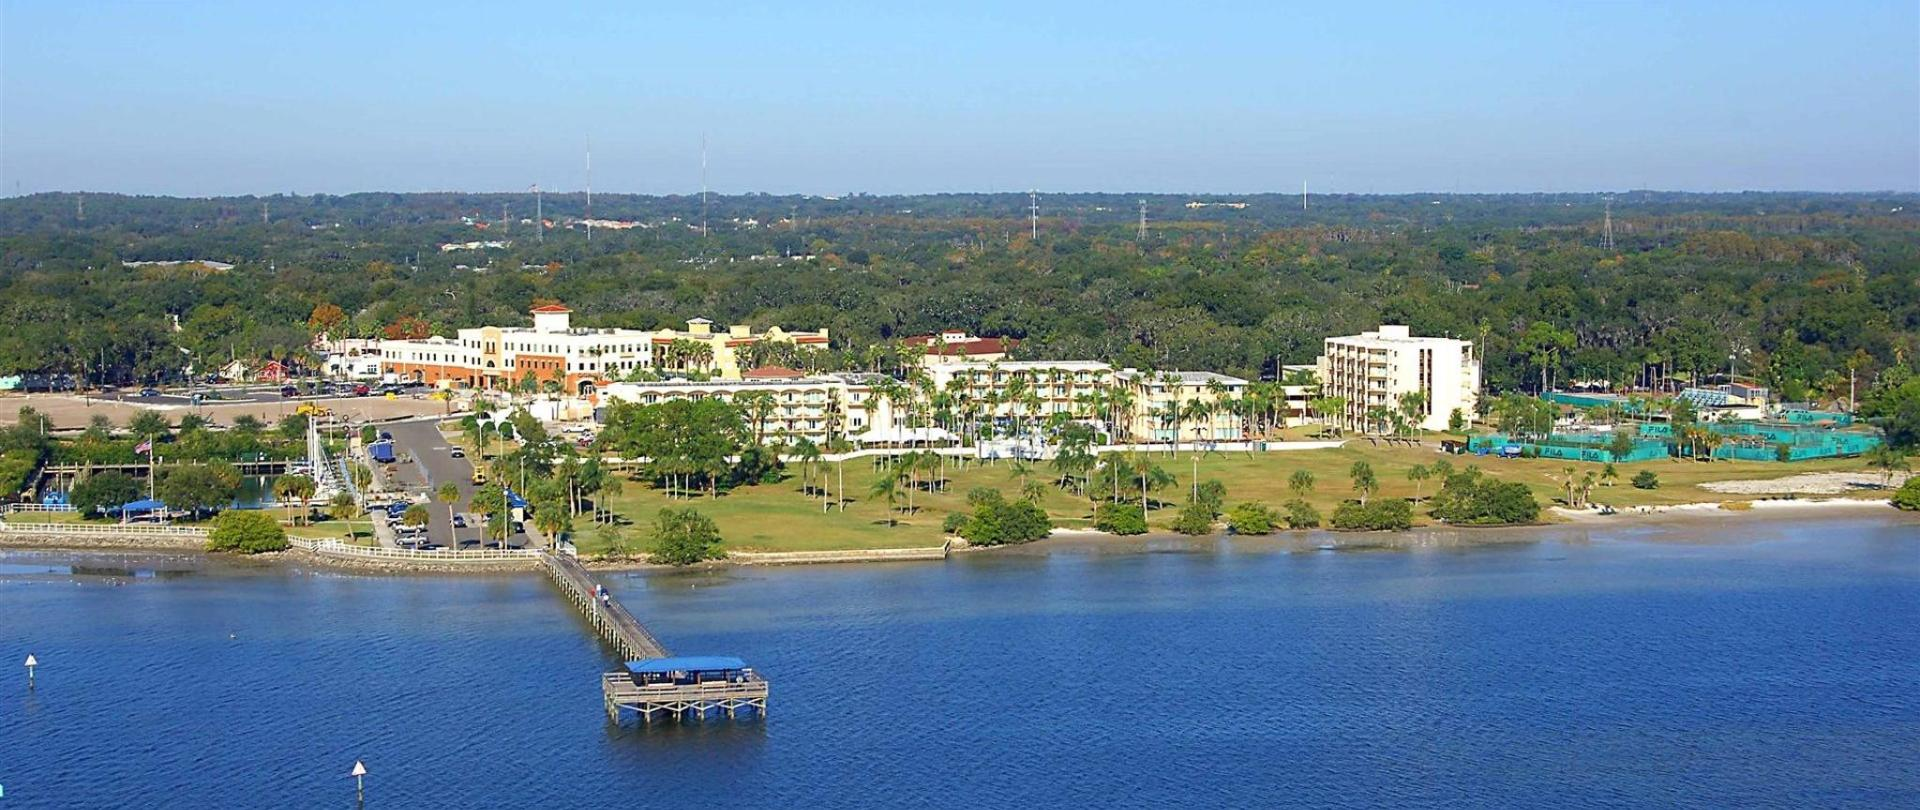 Safety Harbor Resort and Spa - Safety Harbor, FL - United States